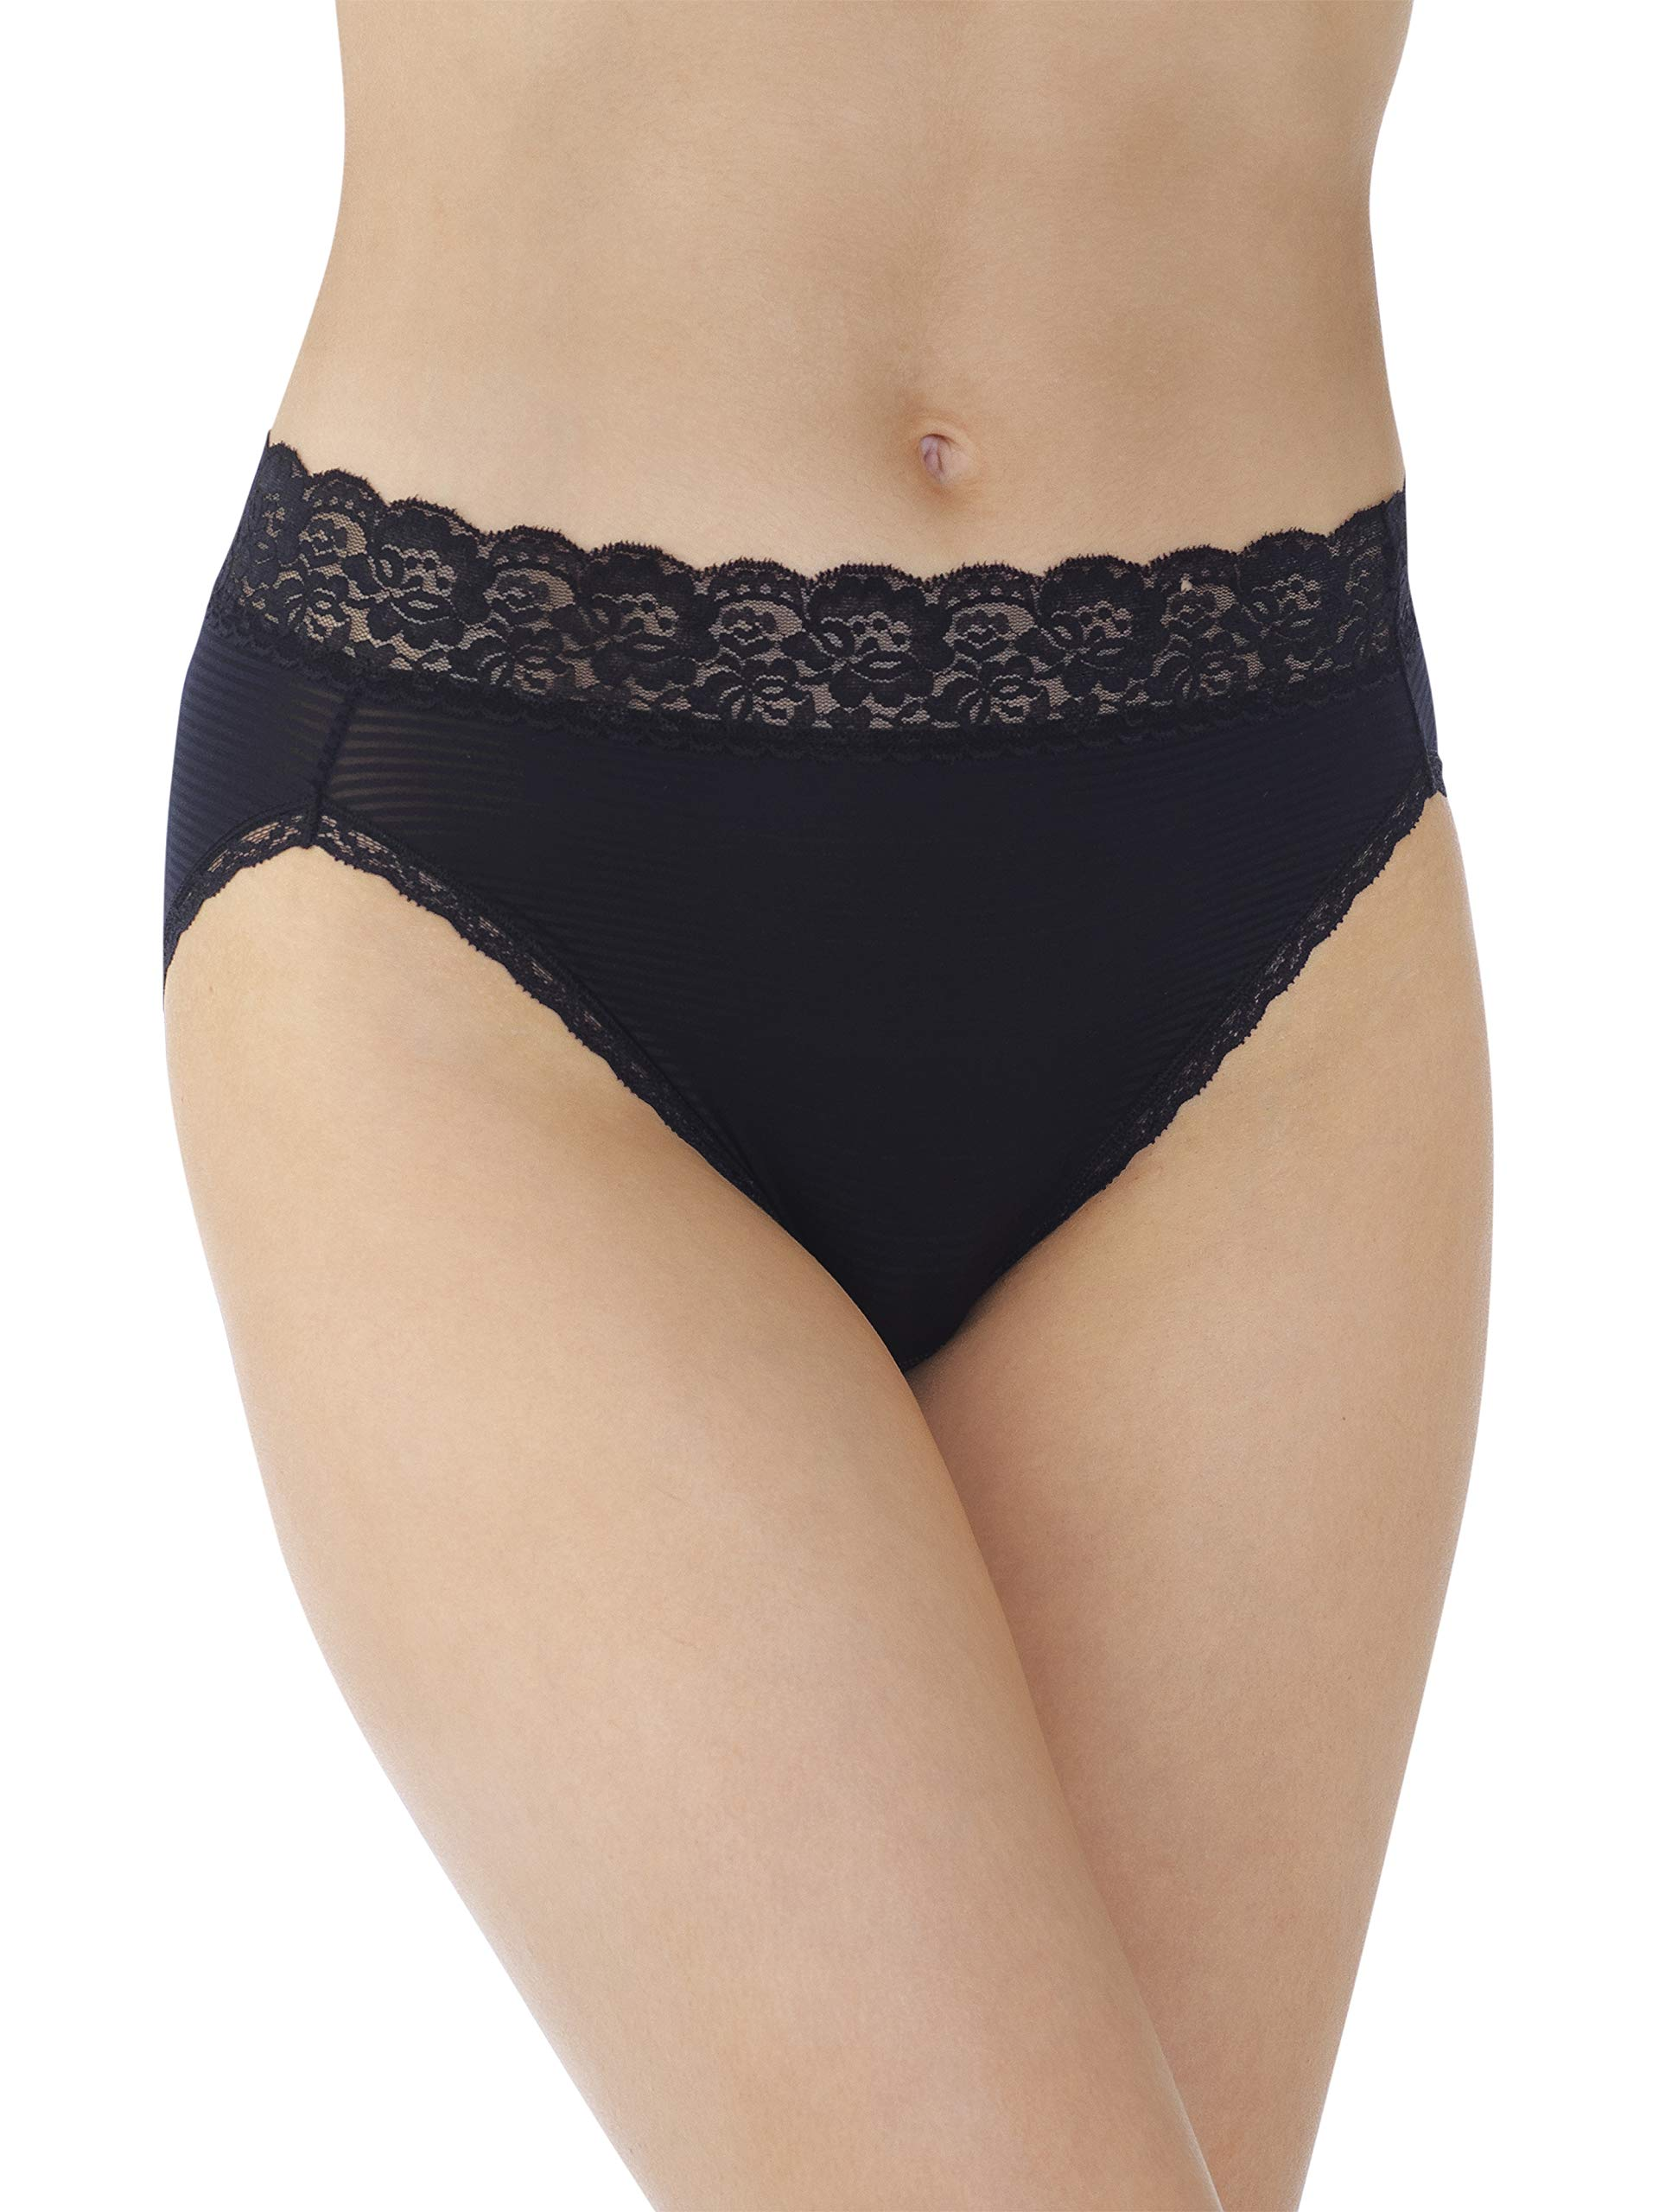 347579235ff Vanity Fair Women's Body Caress Ultimate Comfort Collection Hicut Panty  13280 product image